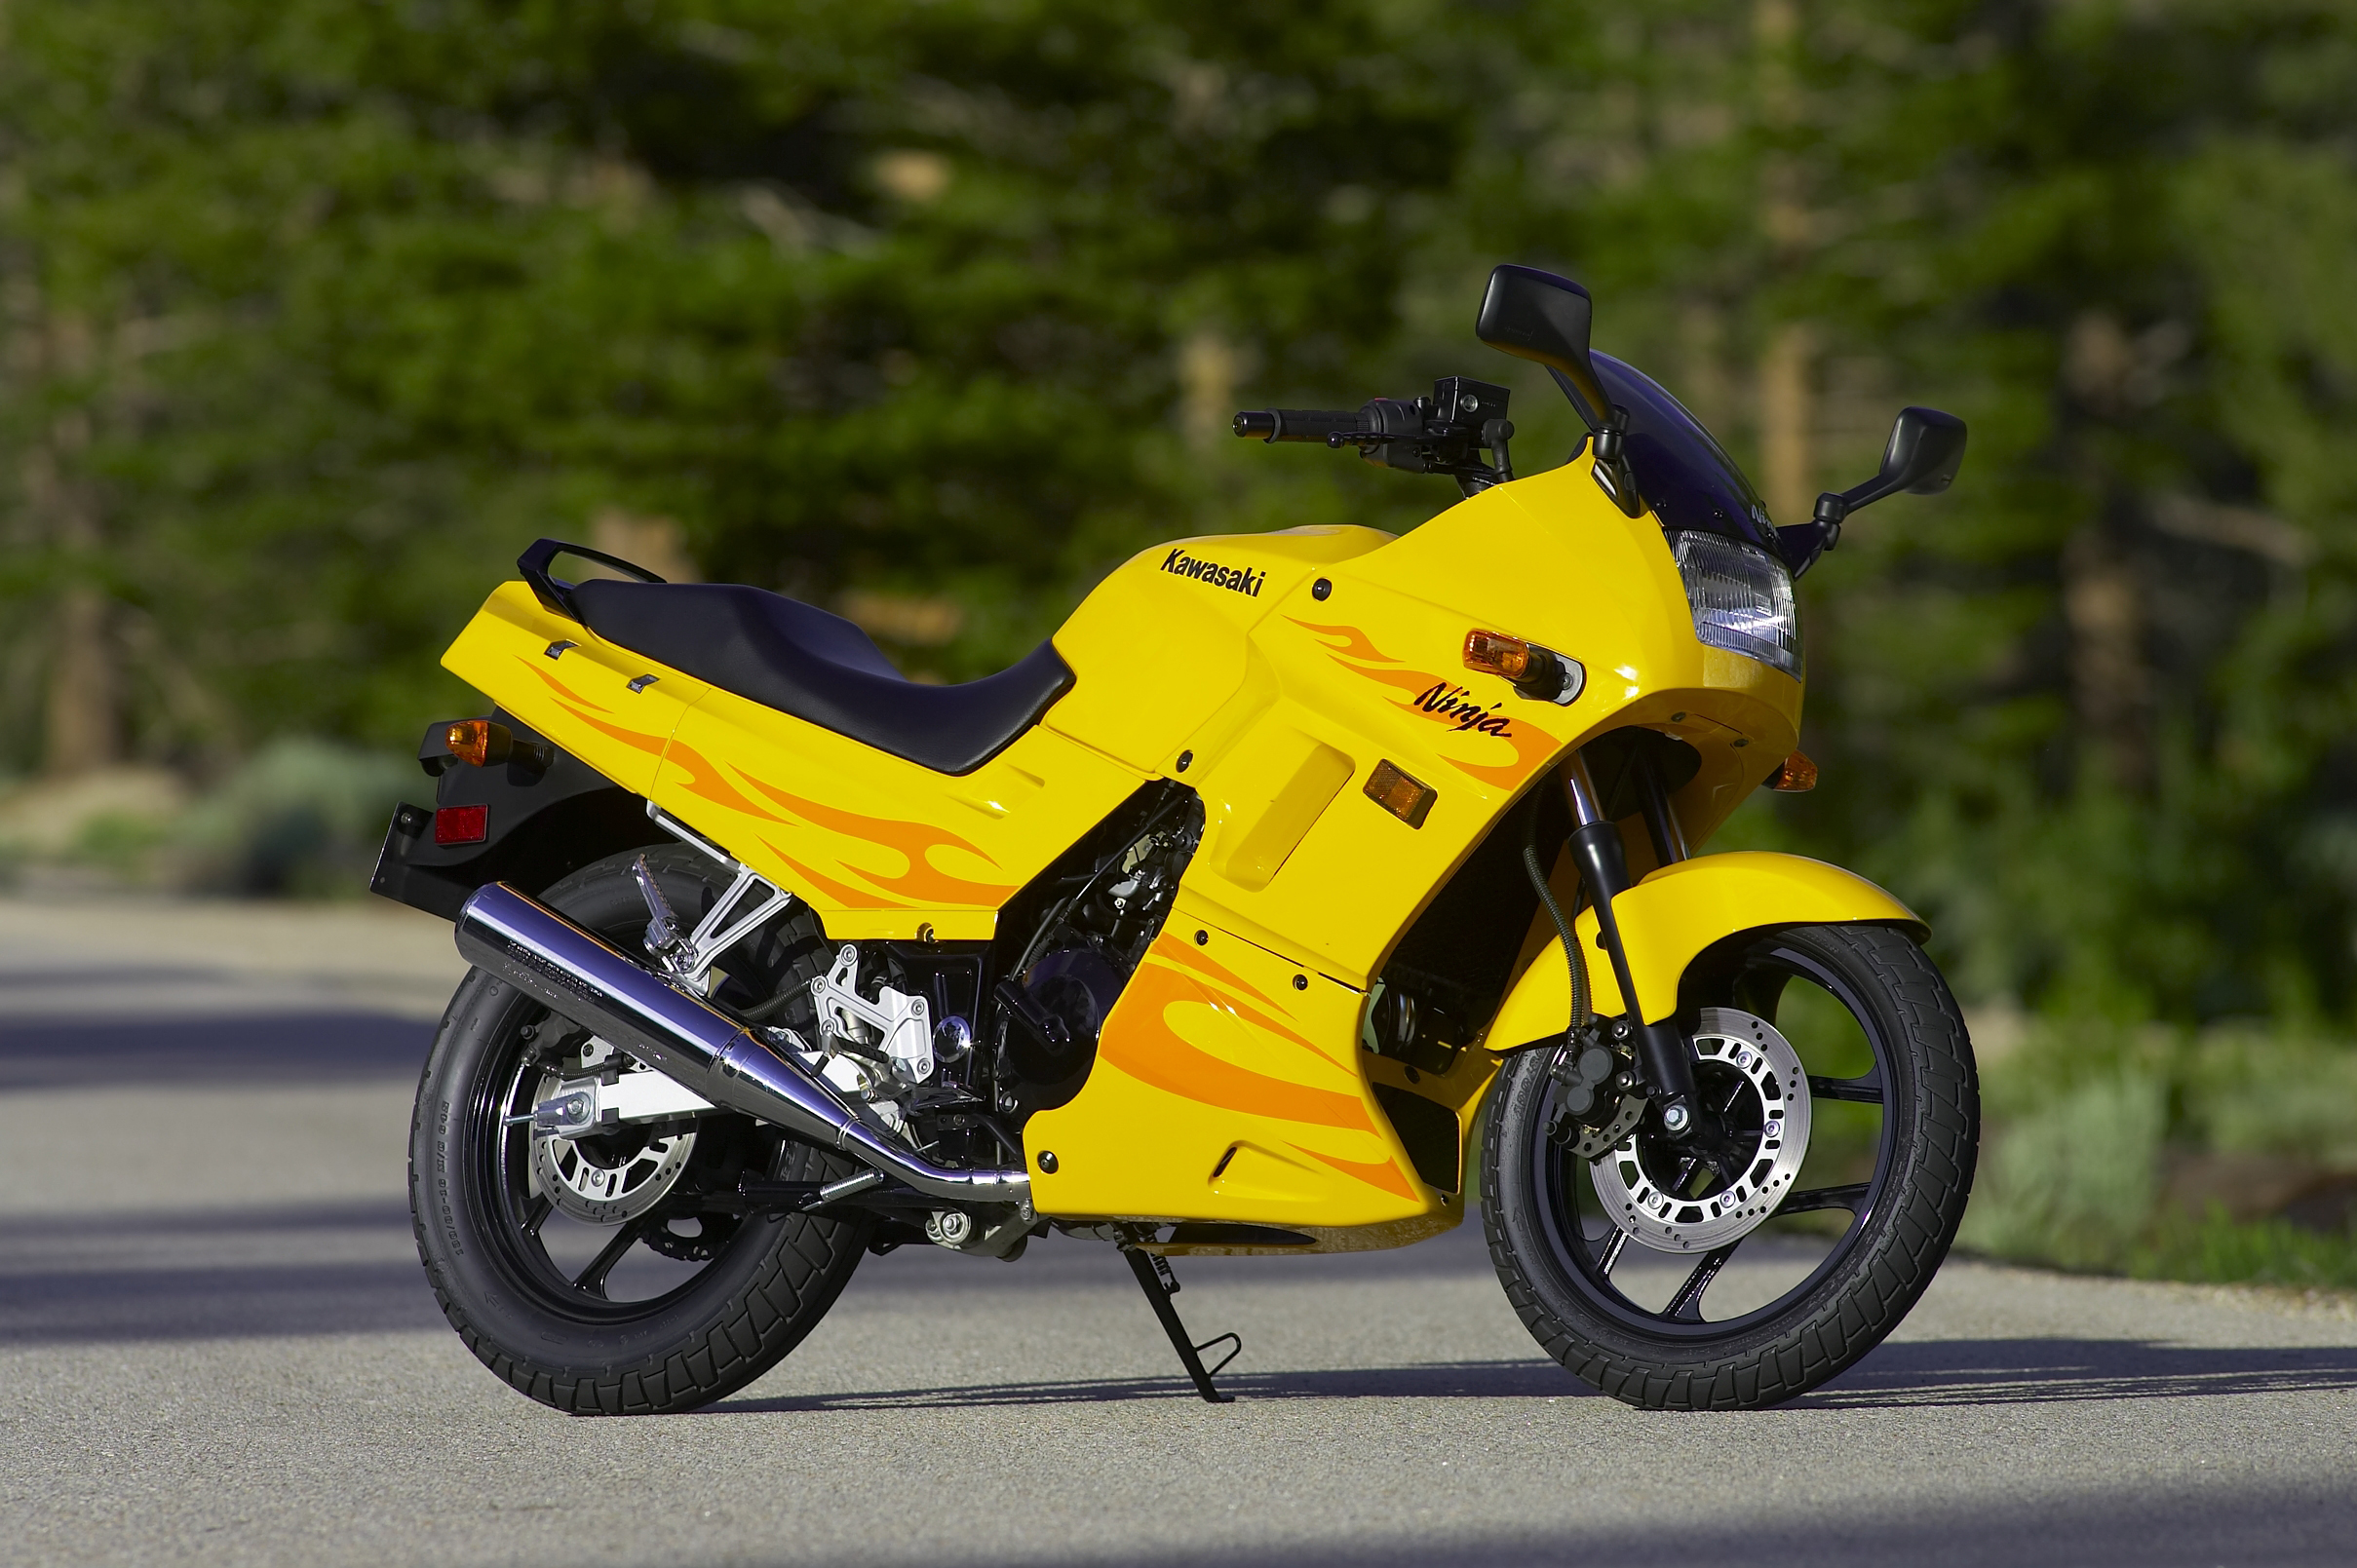 Kawasaki Ninja Black And Yellow